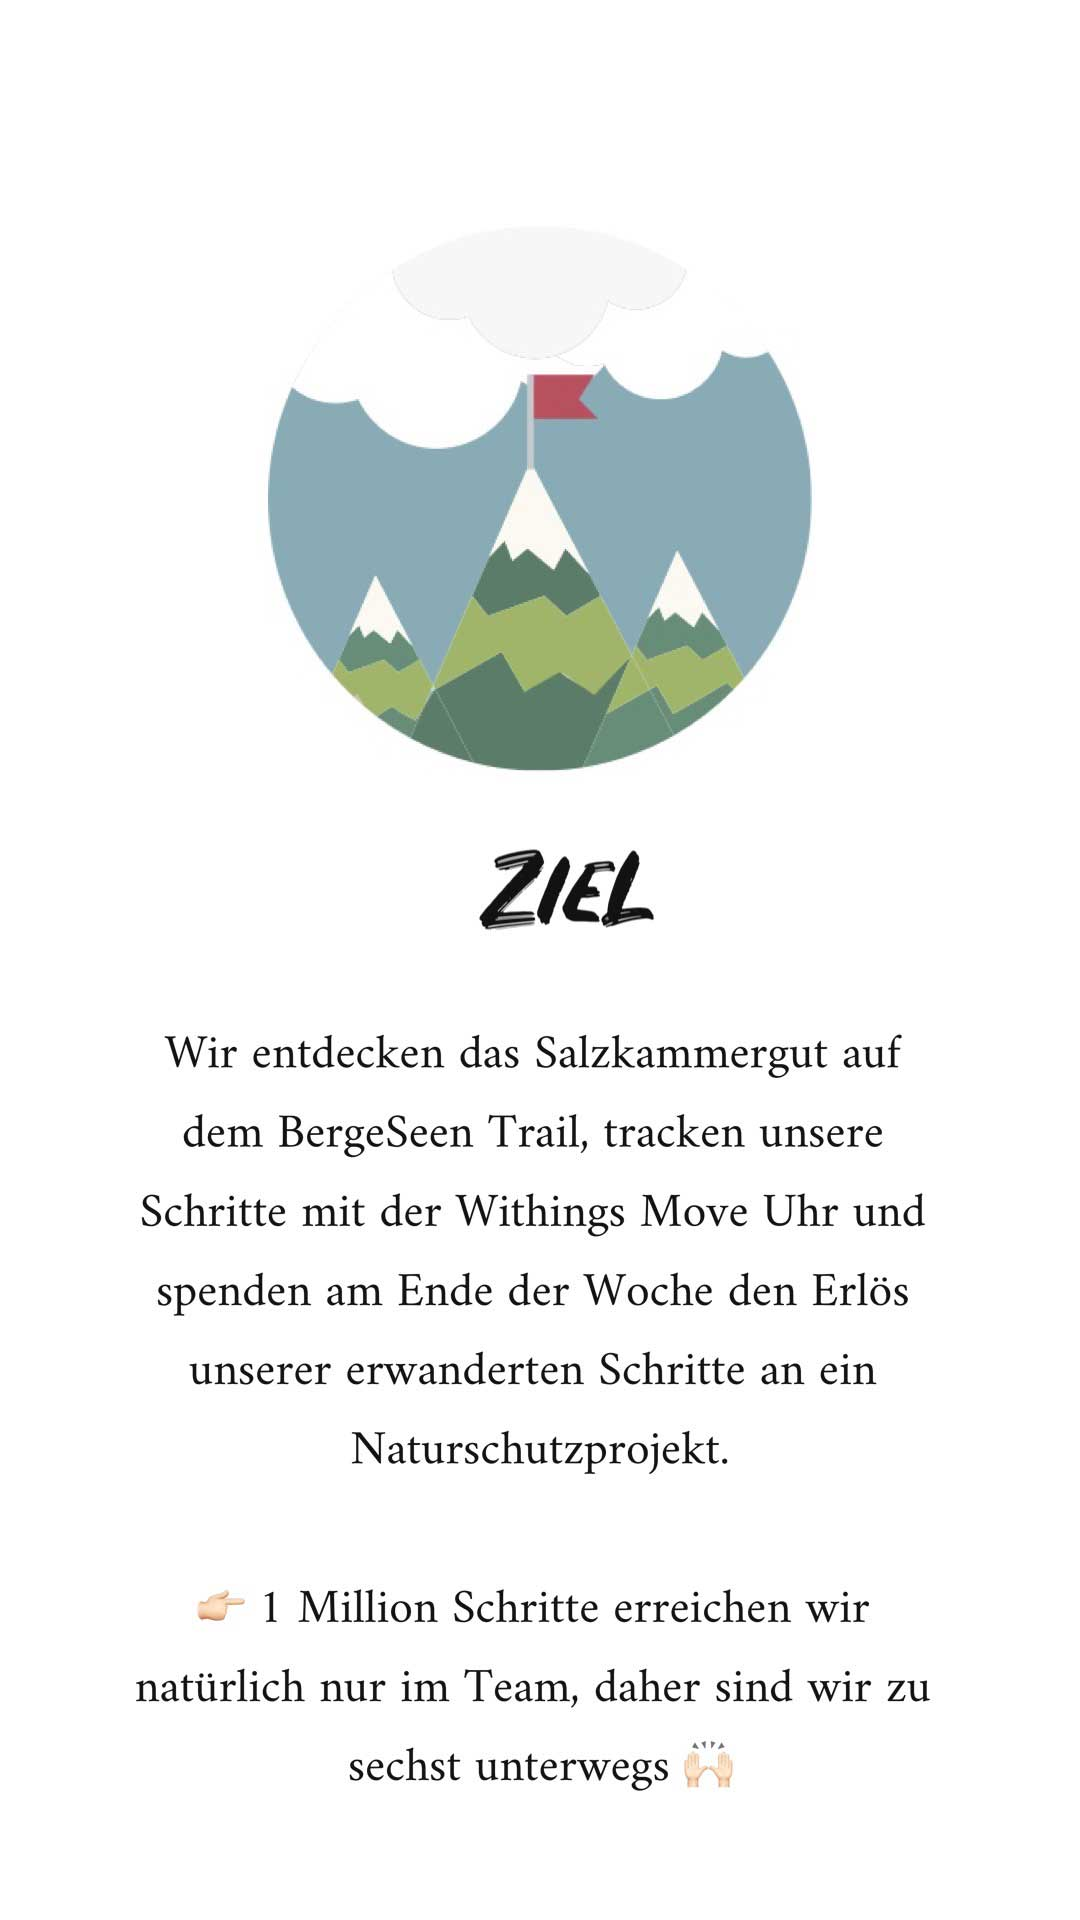 berge-seen-trail-salzkammergut-1-million-steps-munichmountaingirls